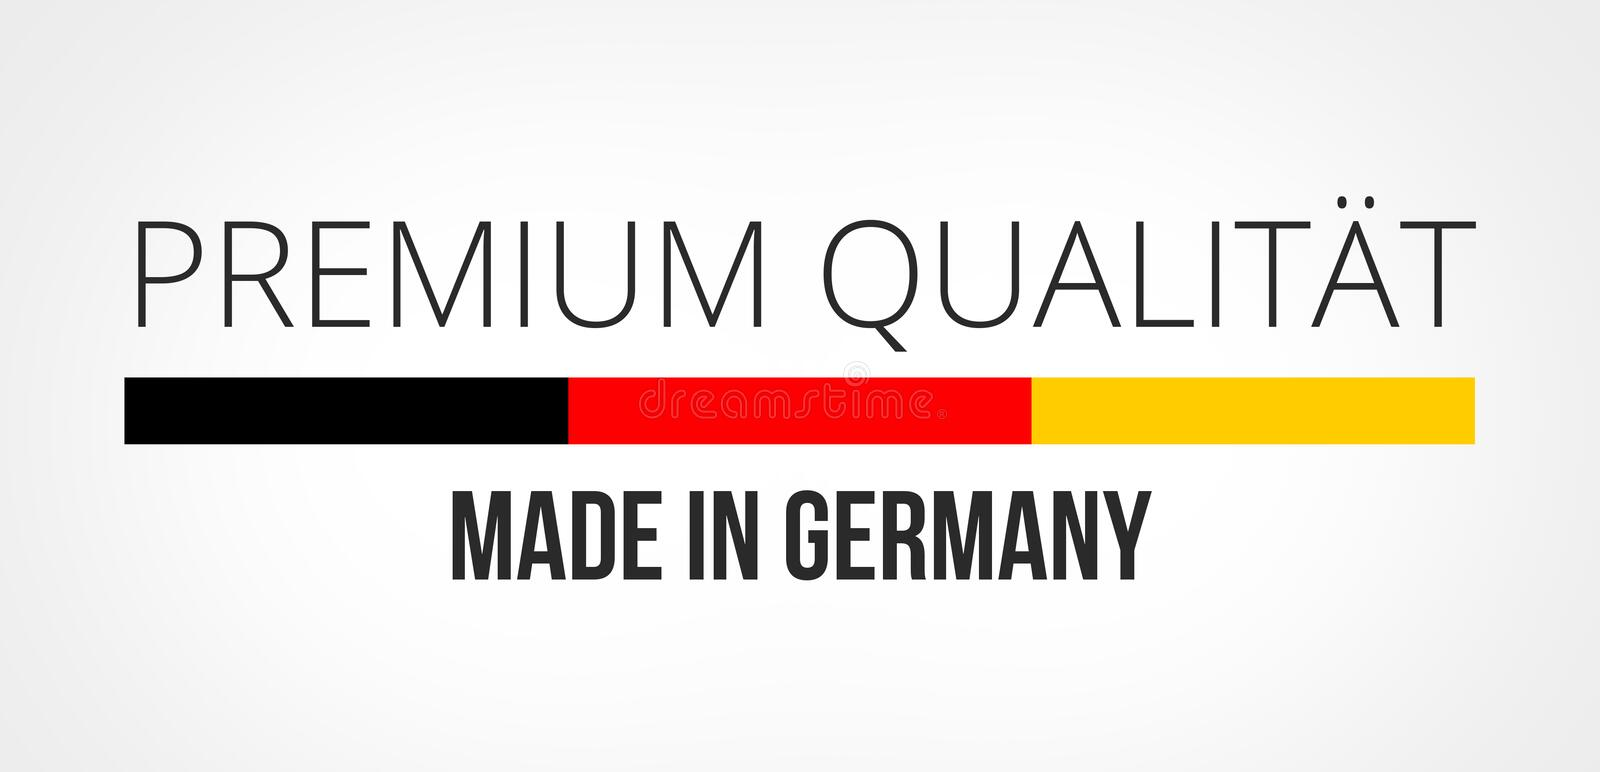 German Language For Premium Quality Made In Germany Stock